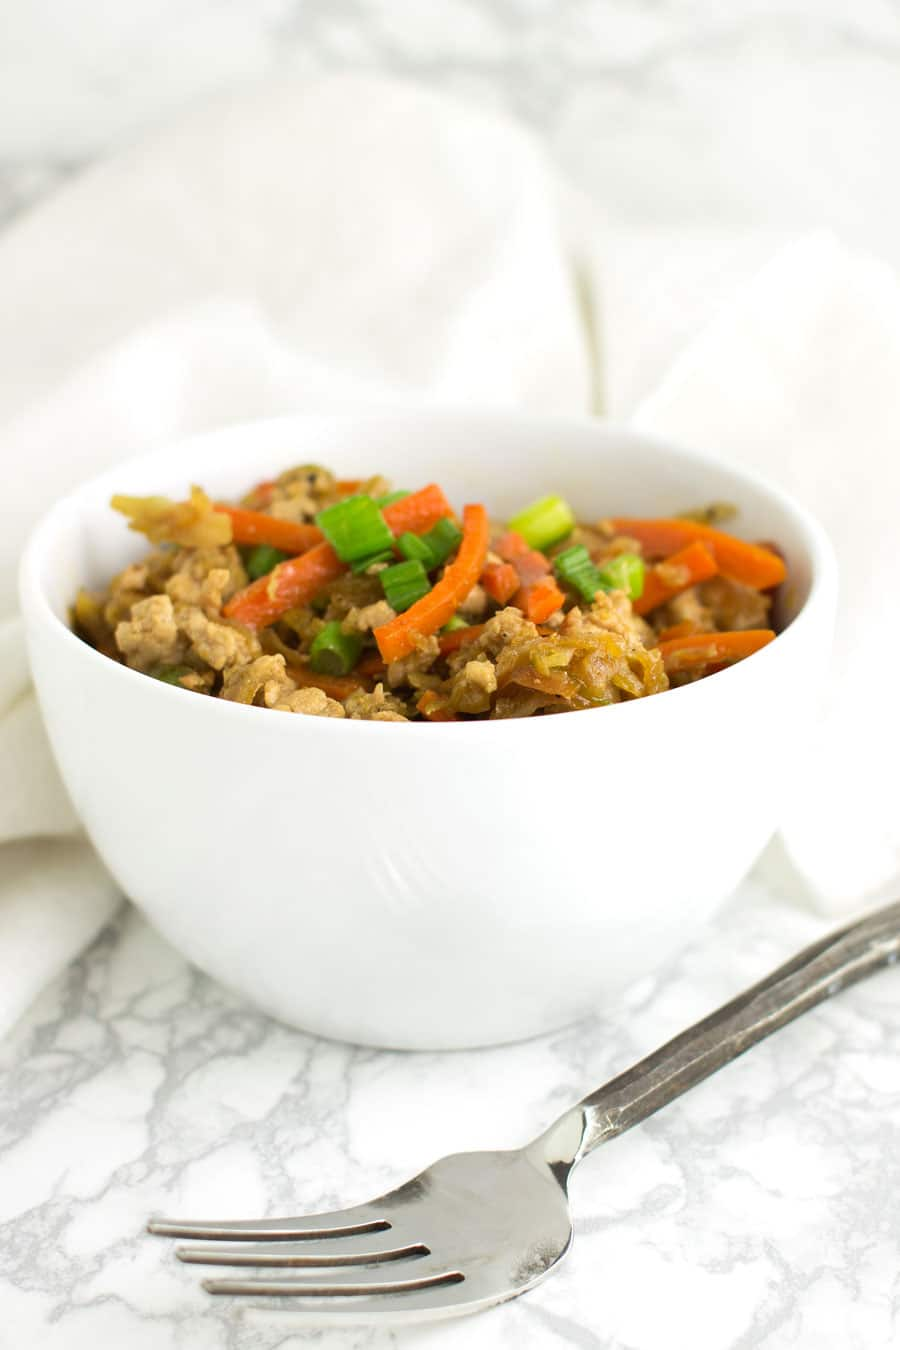 Egg Roll Stir-Fry recipe from acleanplate.com #paleo #aip #autoimmuneprotocol